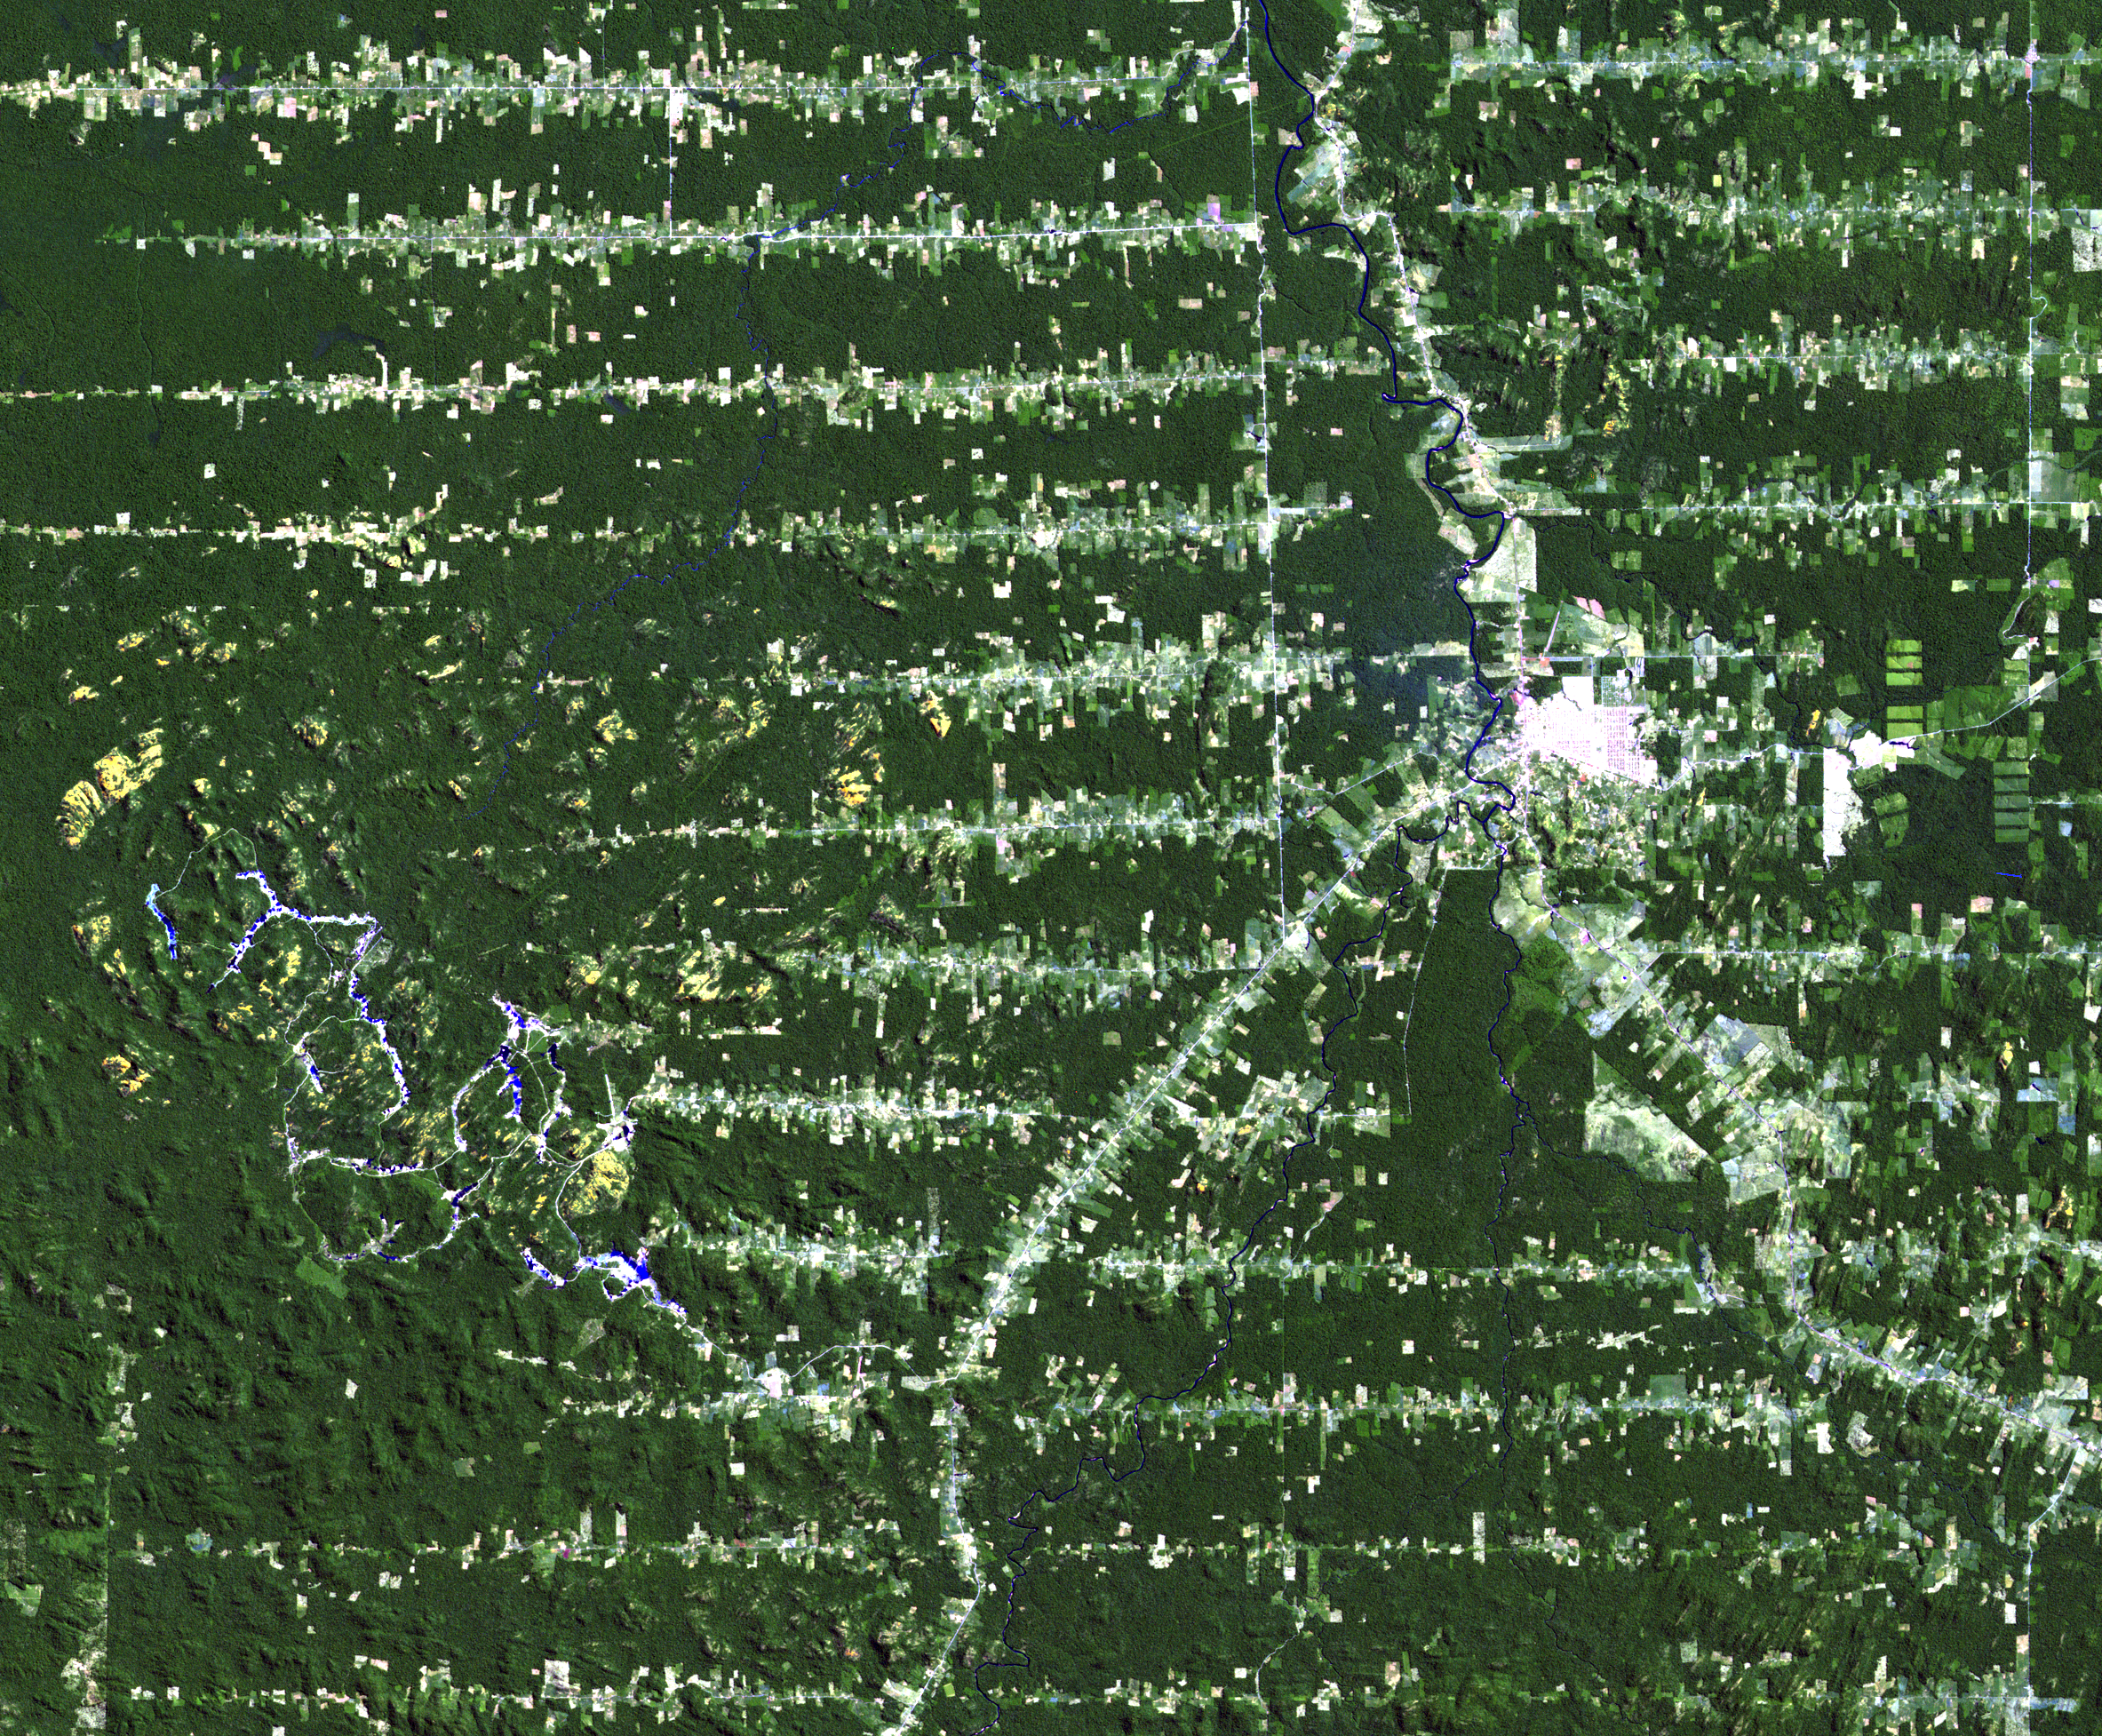 July 16, 1986, Landsat 5 (path/row 232/67) — Ariquemes, Brazil